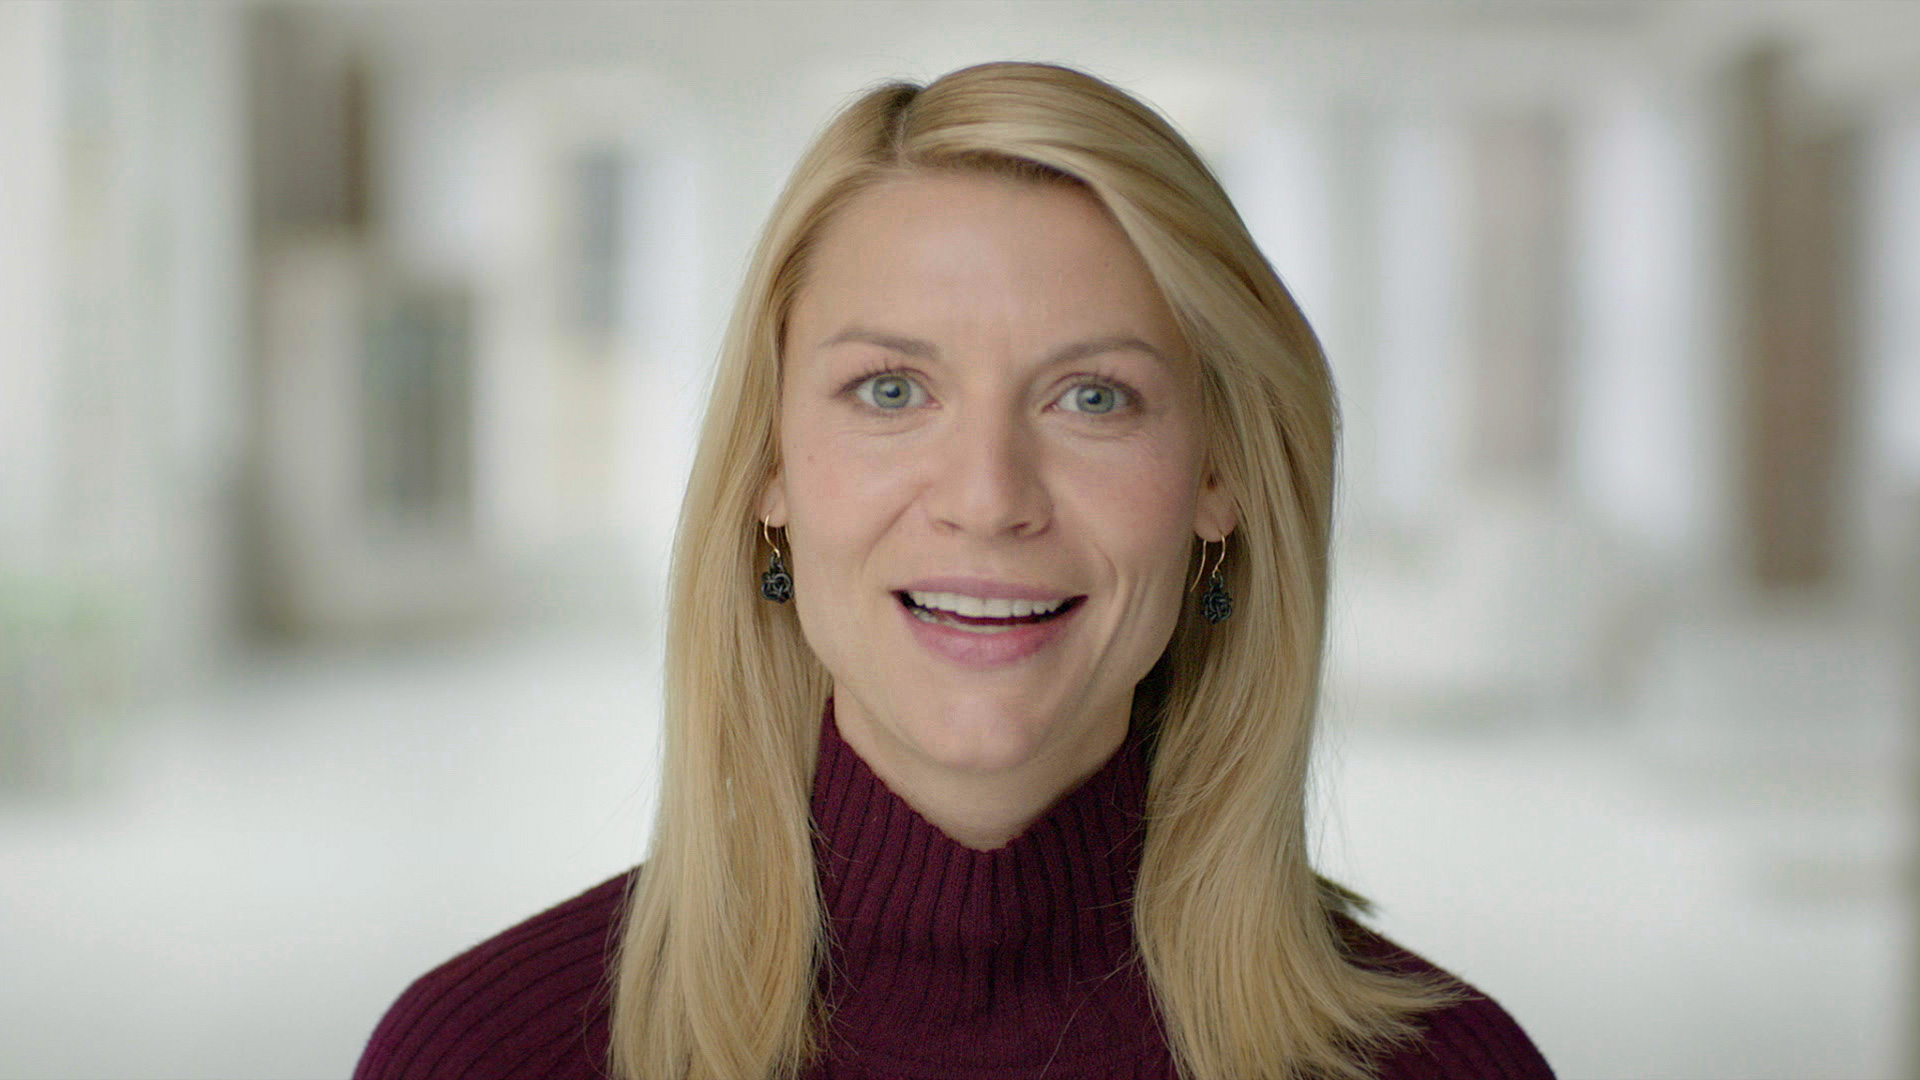 Hosted by Claire Danes